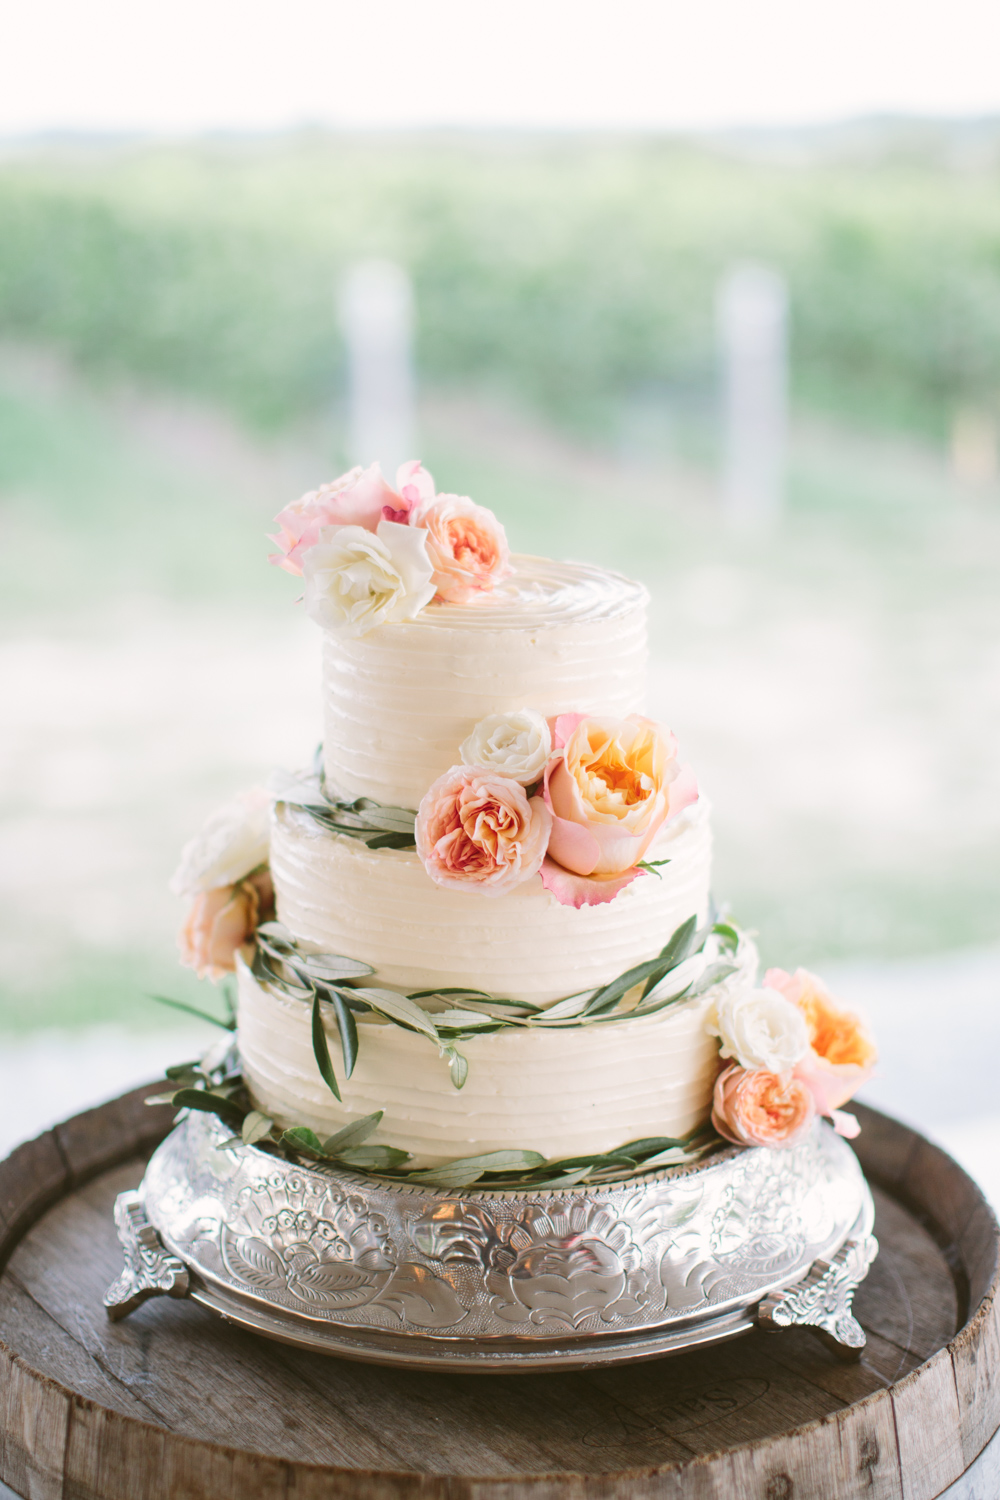 Simple white cake with olive leaves and flowers on an oak wine barrel